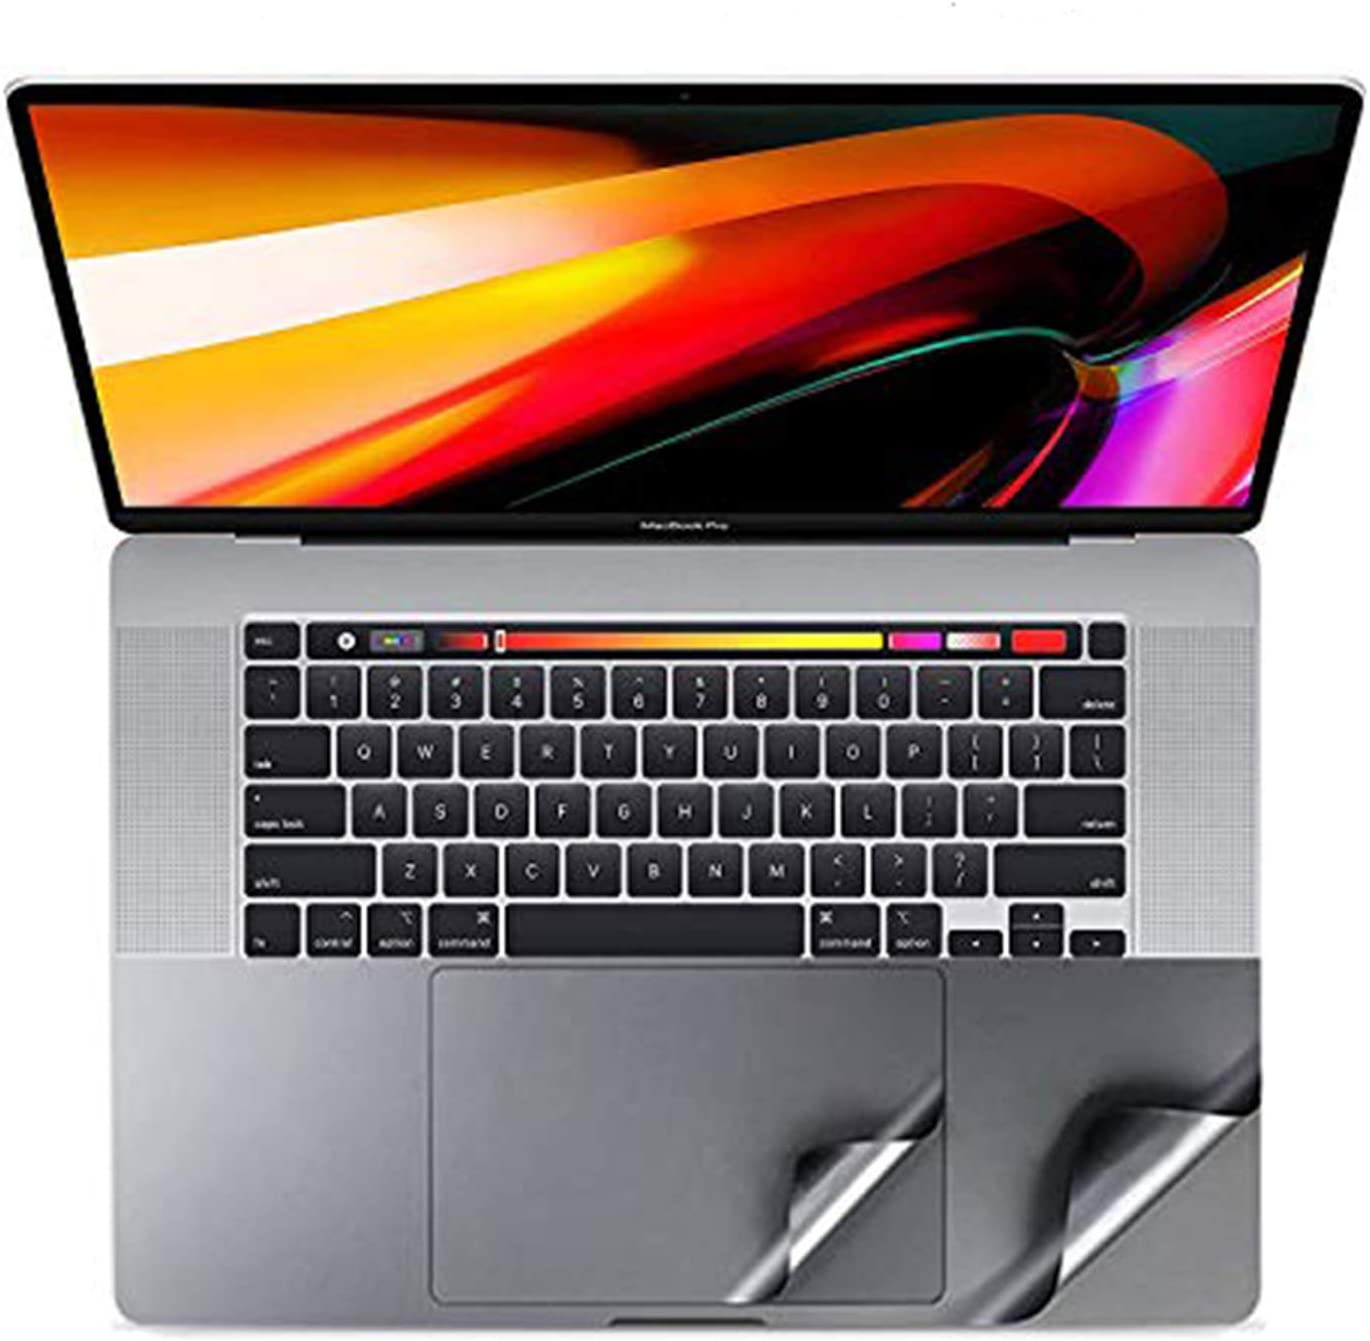 Palm Rest Cover with Trackpad Protector Sticker Skin Compatible with MacBook Pro 16 (A2141),Palm Support Protective Decal Cover Ultra Thin Scratch Resistant -Gray